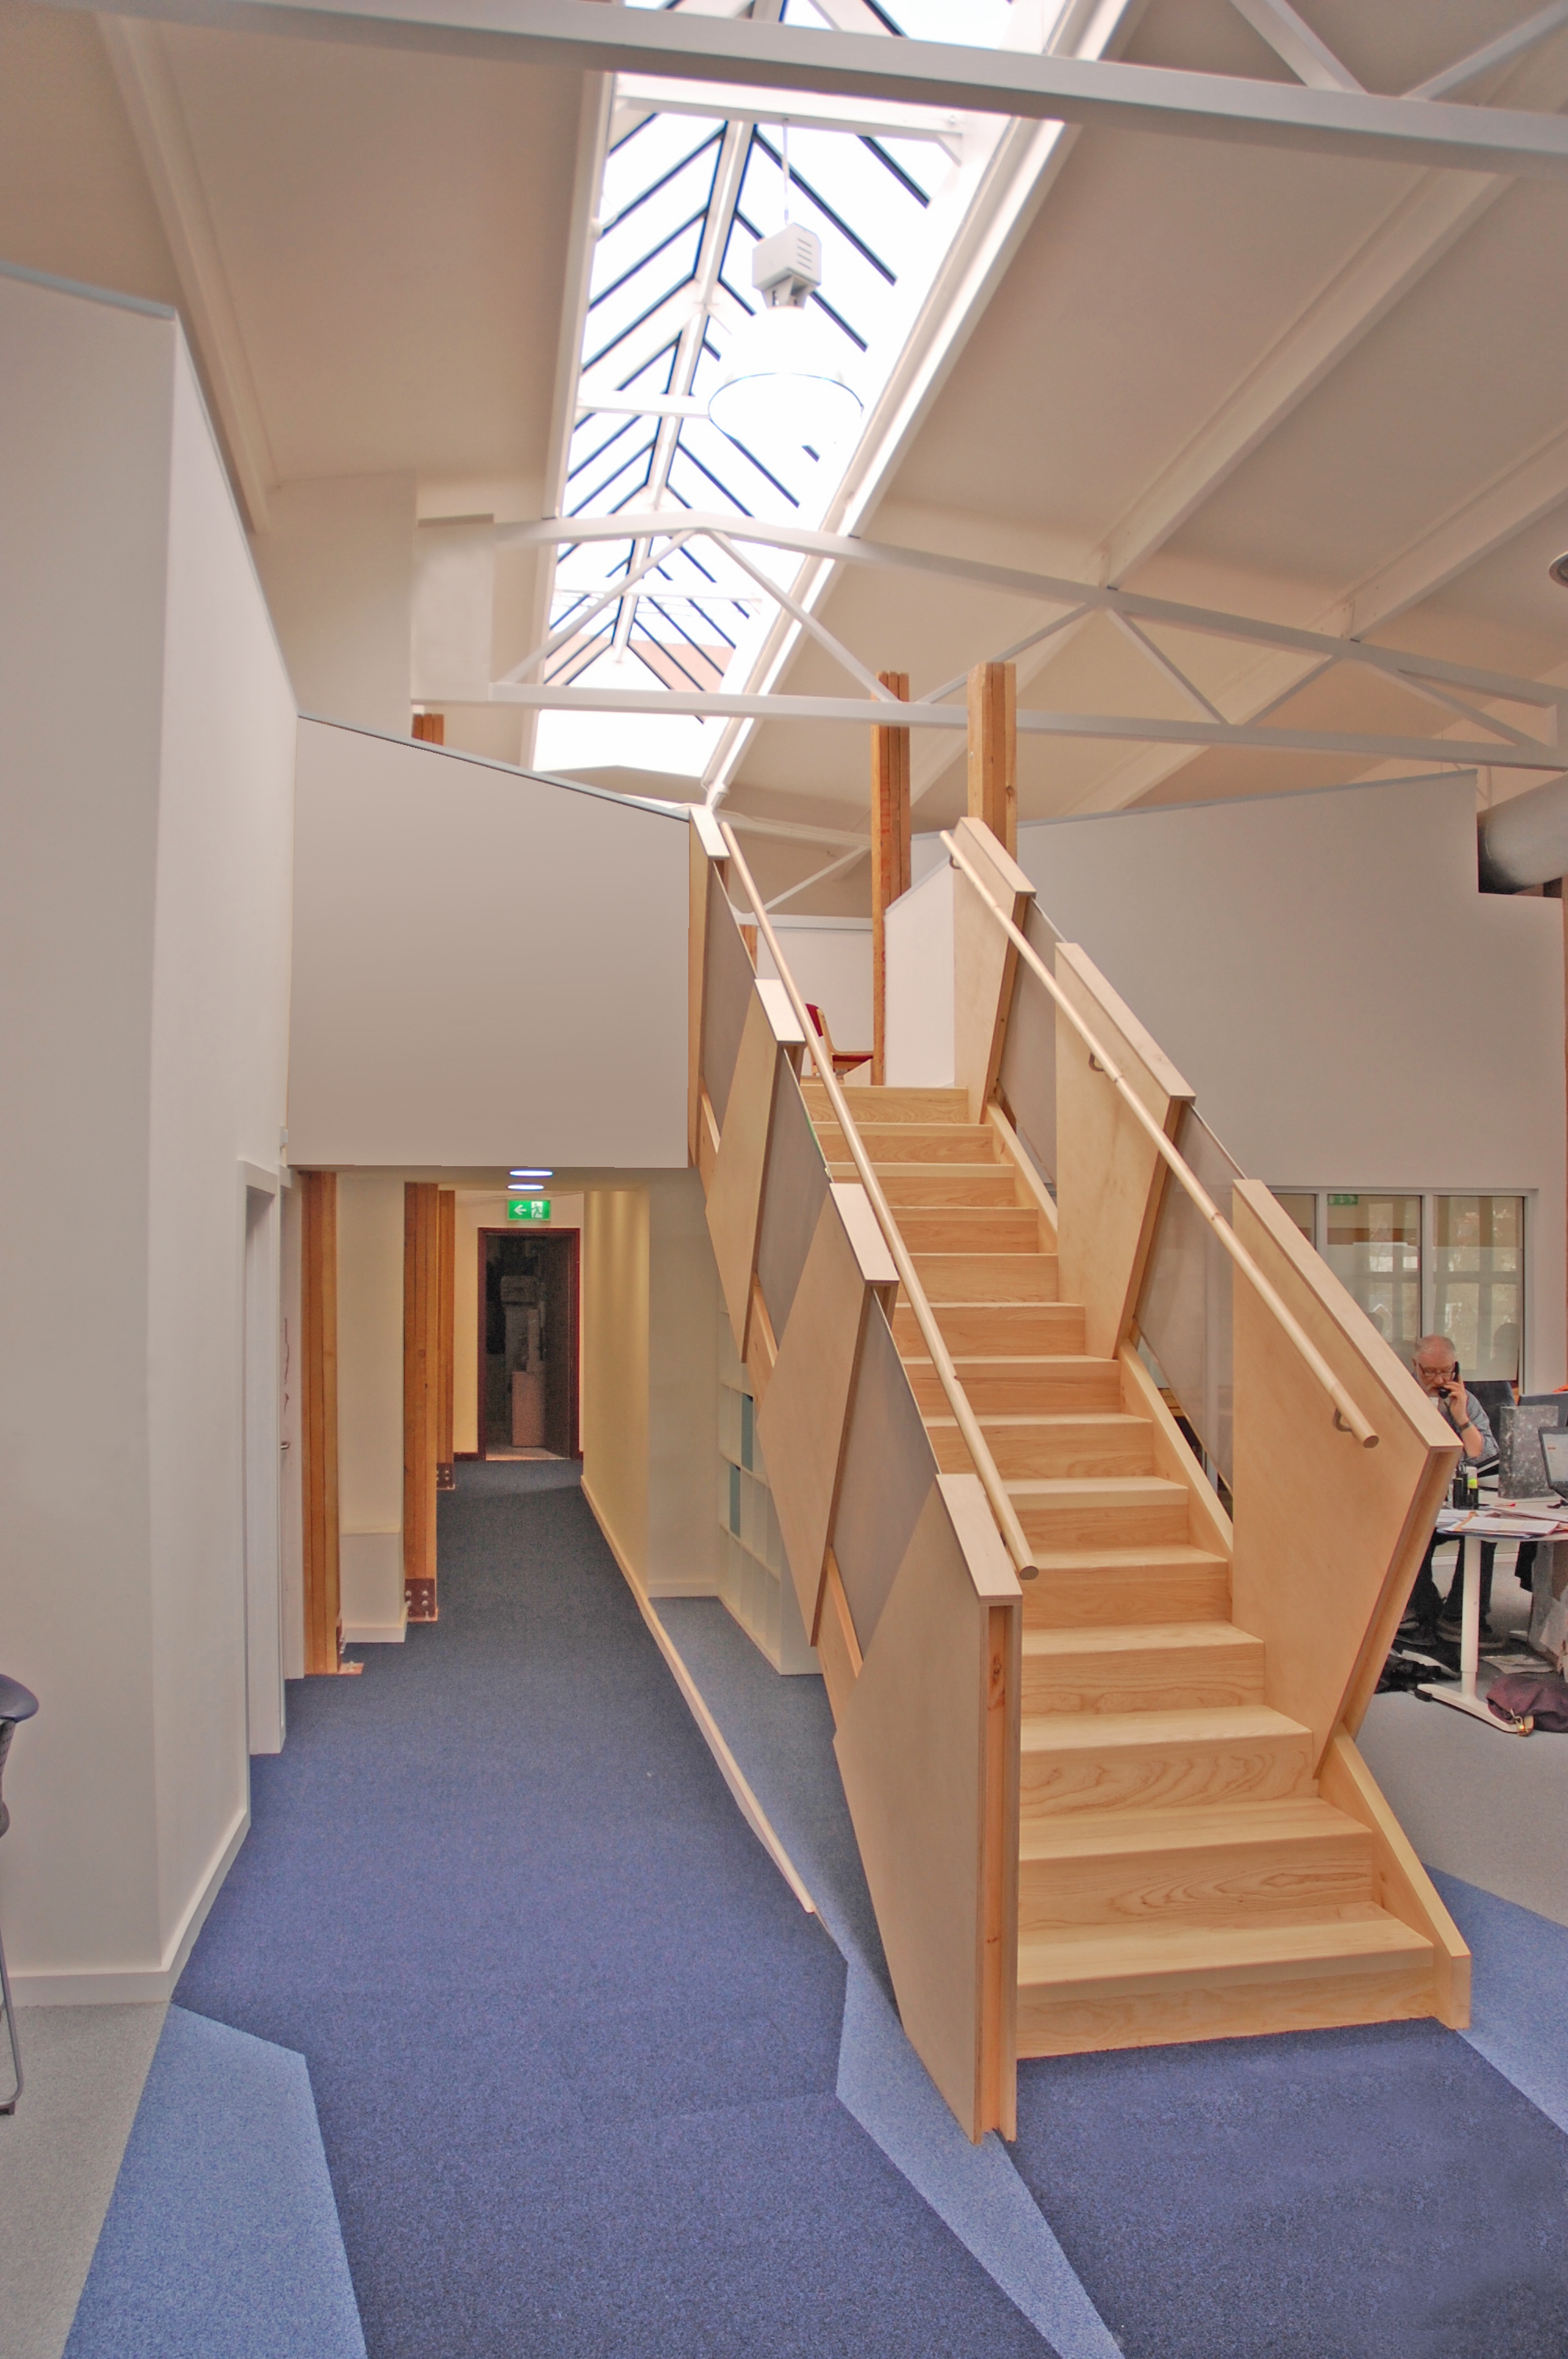 Designed using pencil and CAD, this stair is constructed around a simple ash carcass, with alternating panels of birch ply and stainless steel